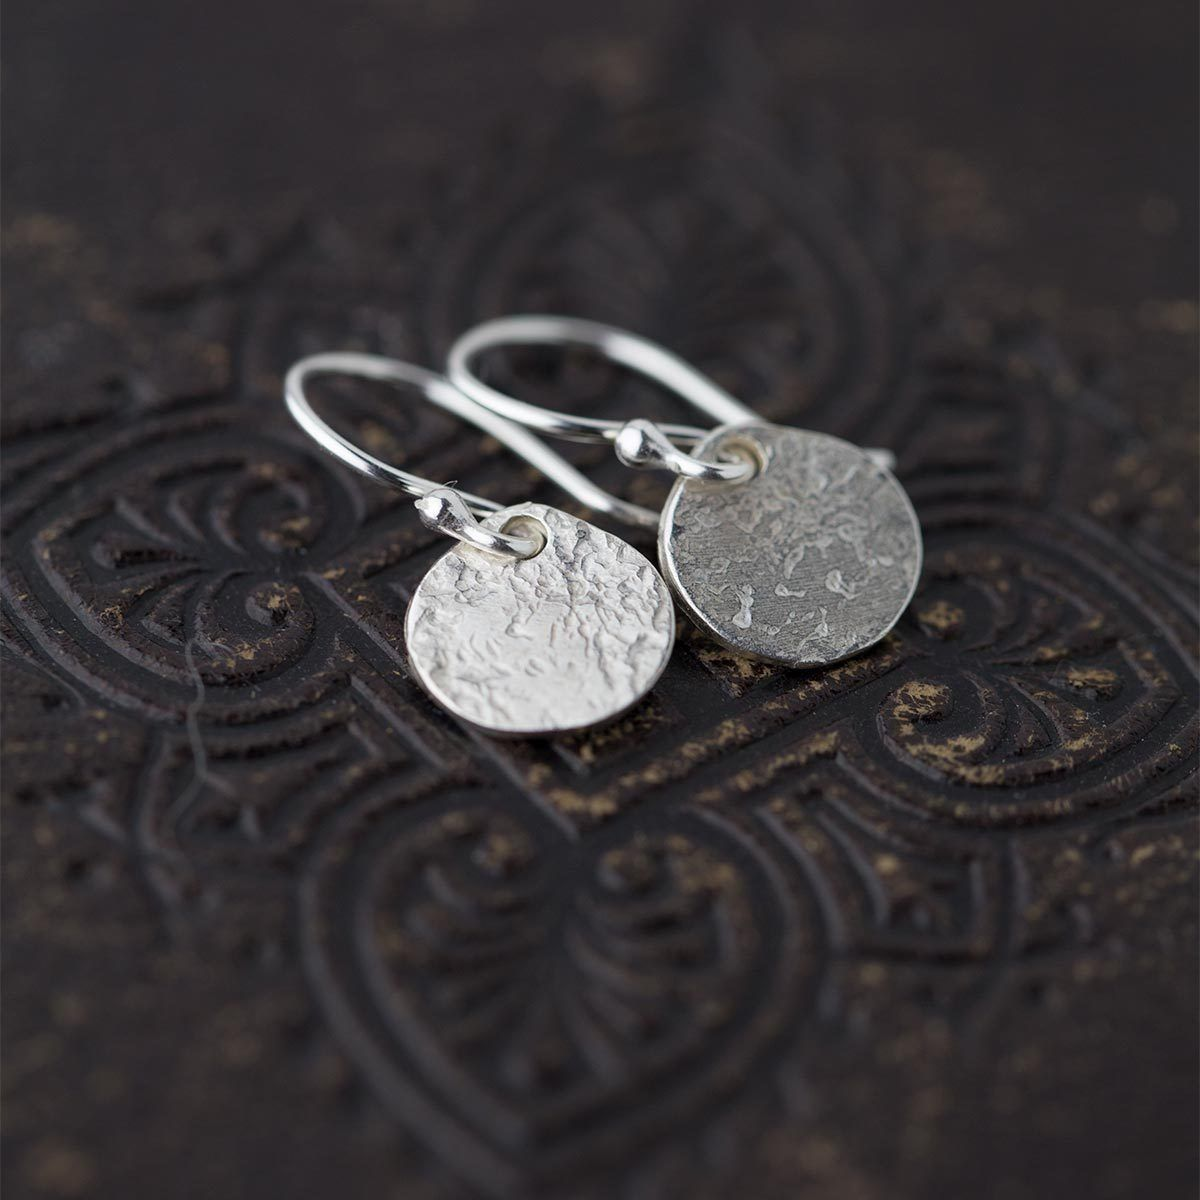 Rustic Disk Earrings - Handmade Jewelry by Burnish